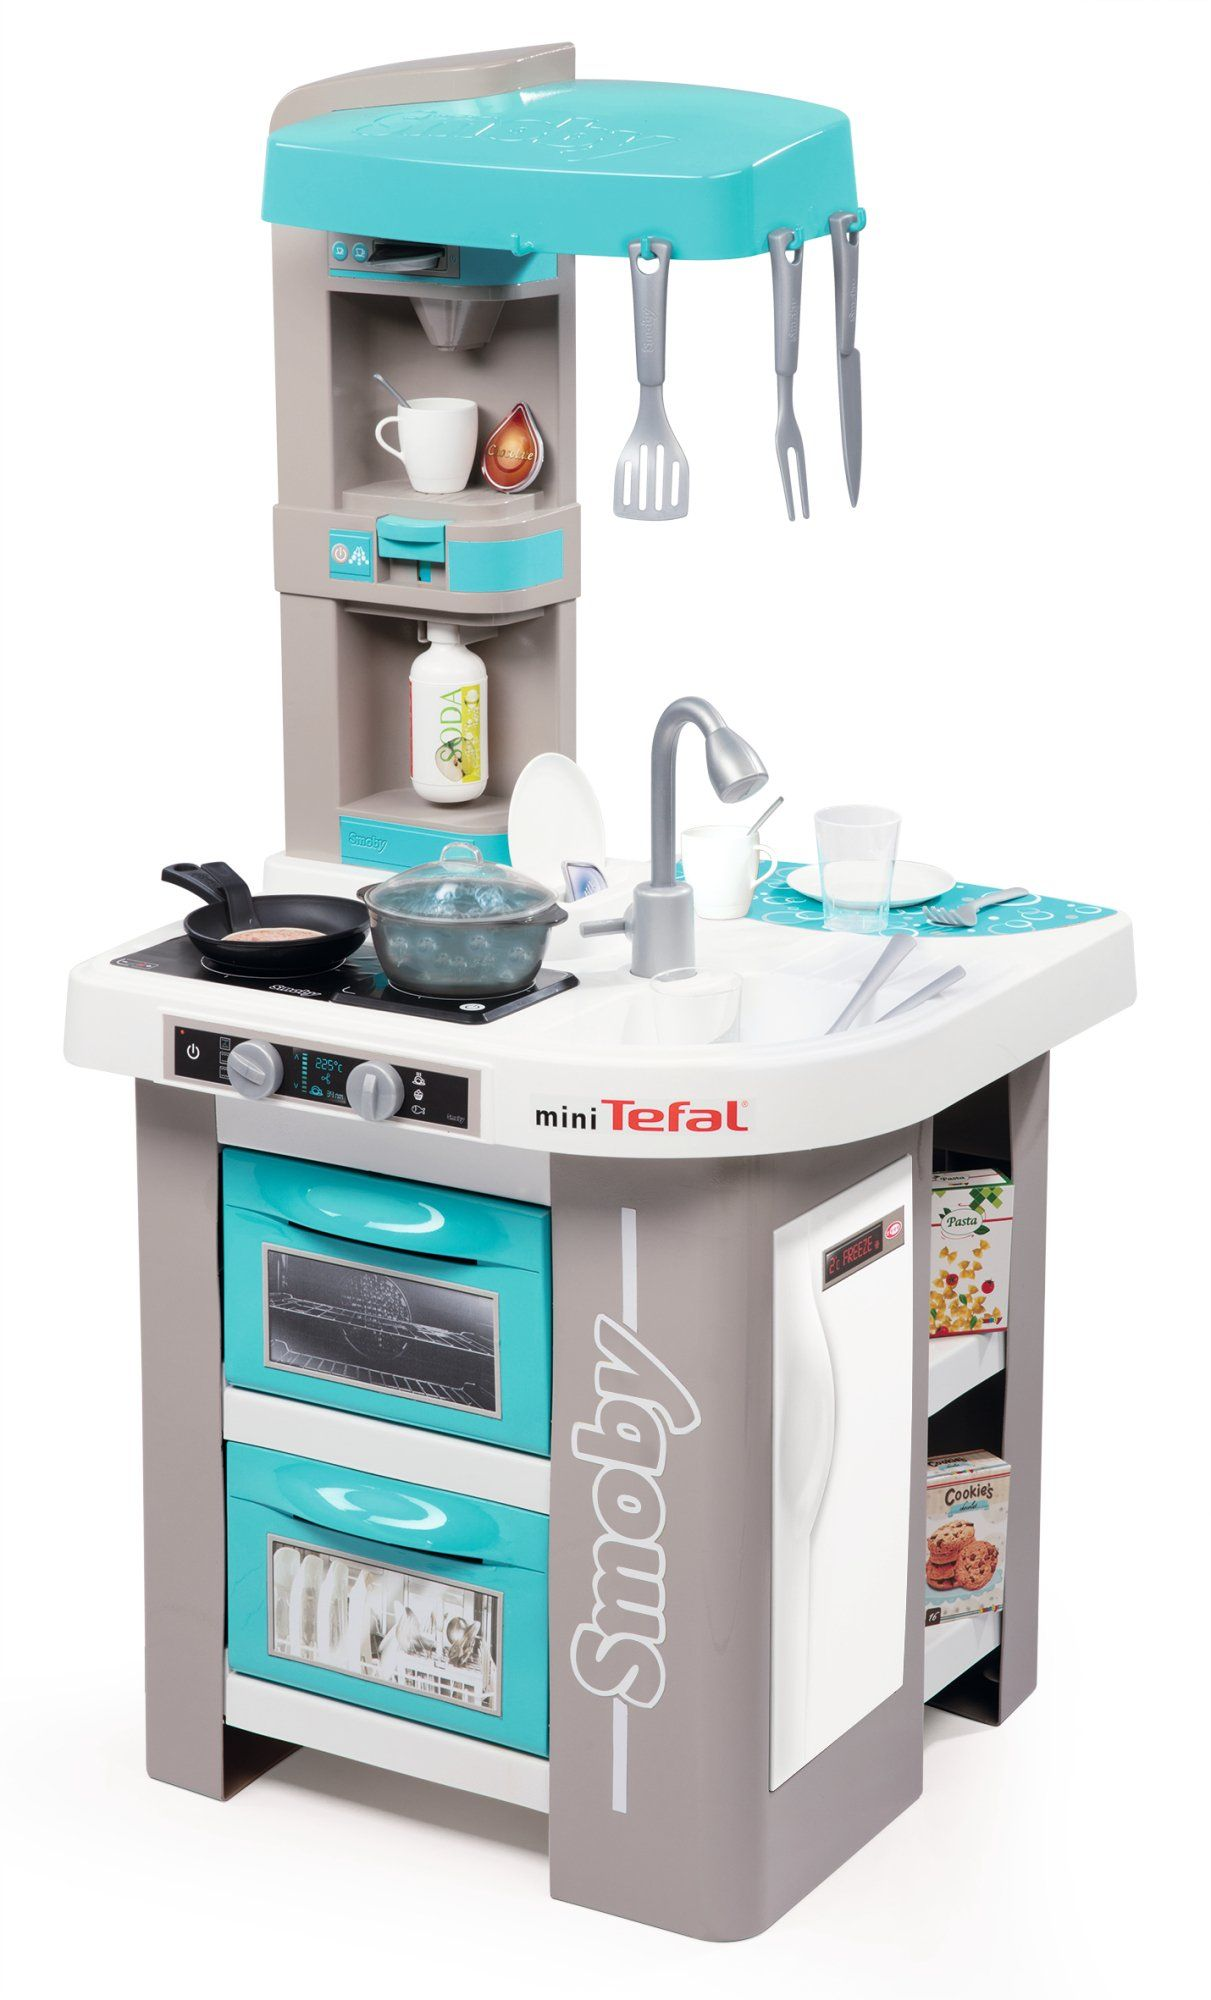 Smoby Tefal French Touch Bubble Küche Mit Wasserfunktion Smoby 311023 Tefal Studio Bubble | Studio Kitchen, Locker Storage, Tefal